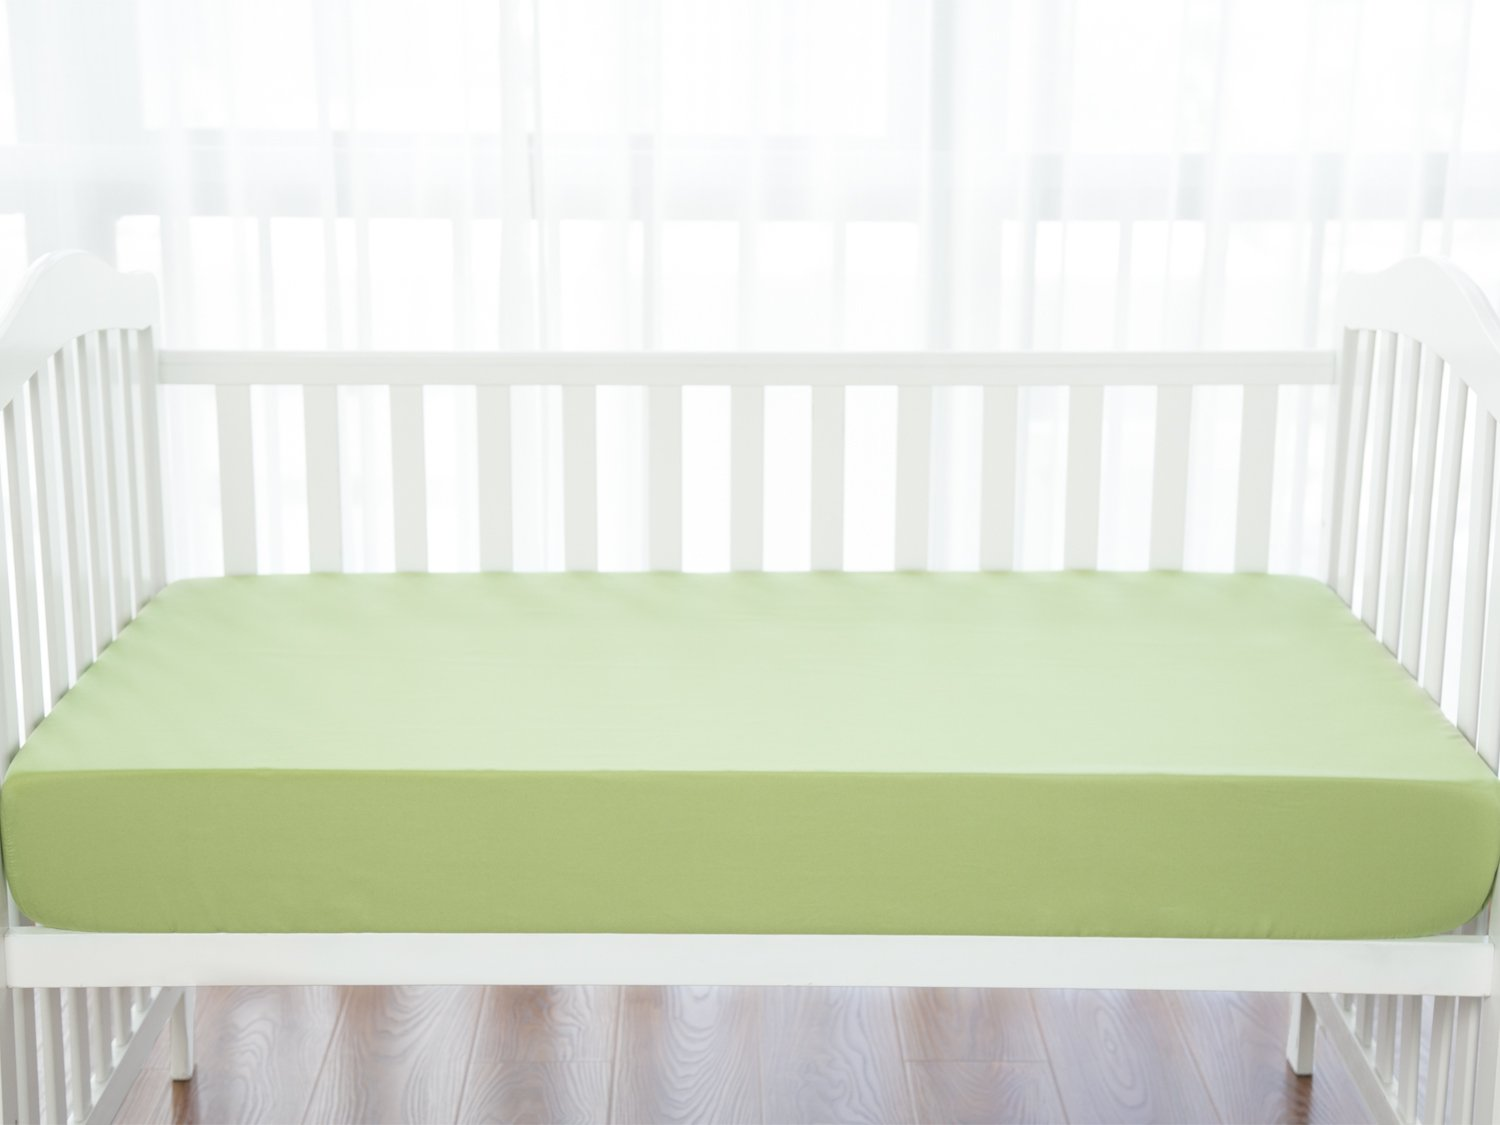 TILLYOU Silky Soft Microfiber Crib Sheet, Breathable Cozy Toddler Sheets for Boys and Girls, 28 x 52in Fits Standard Crib & Toddler Mattress, Pea Green